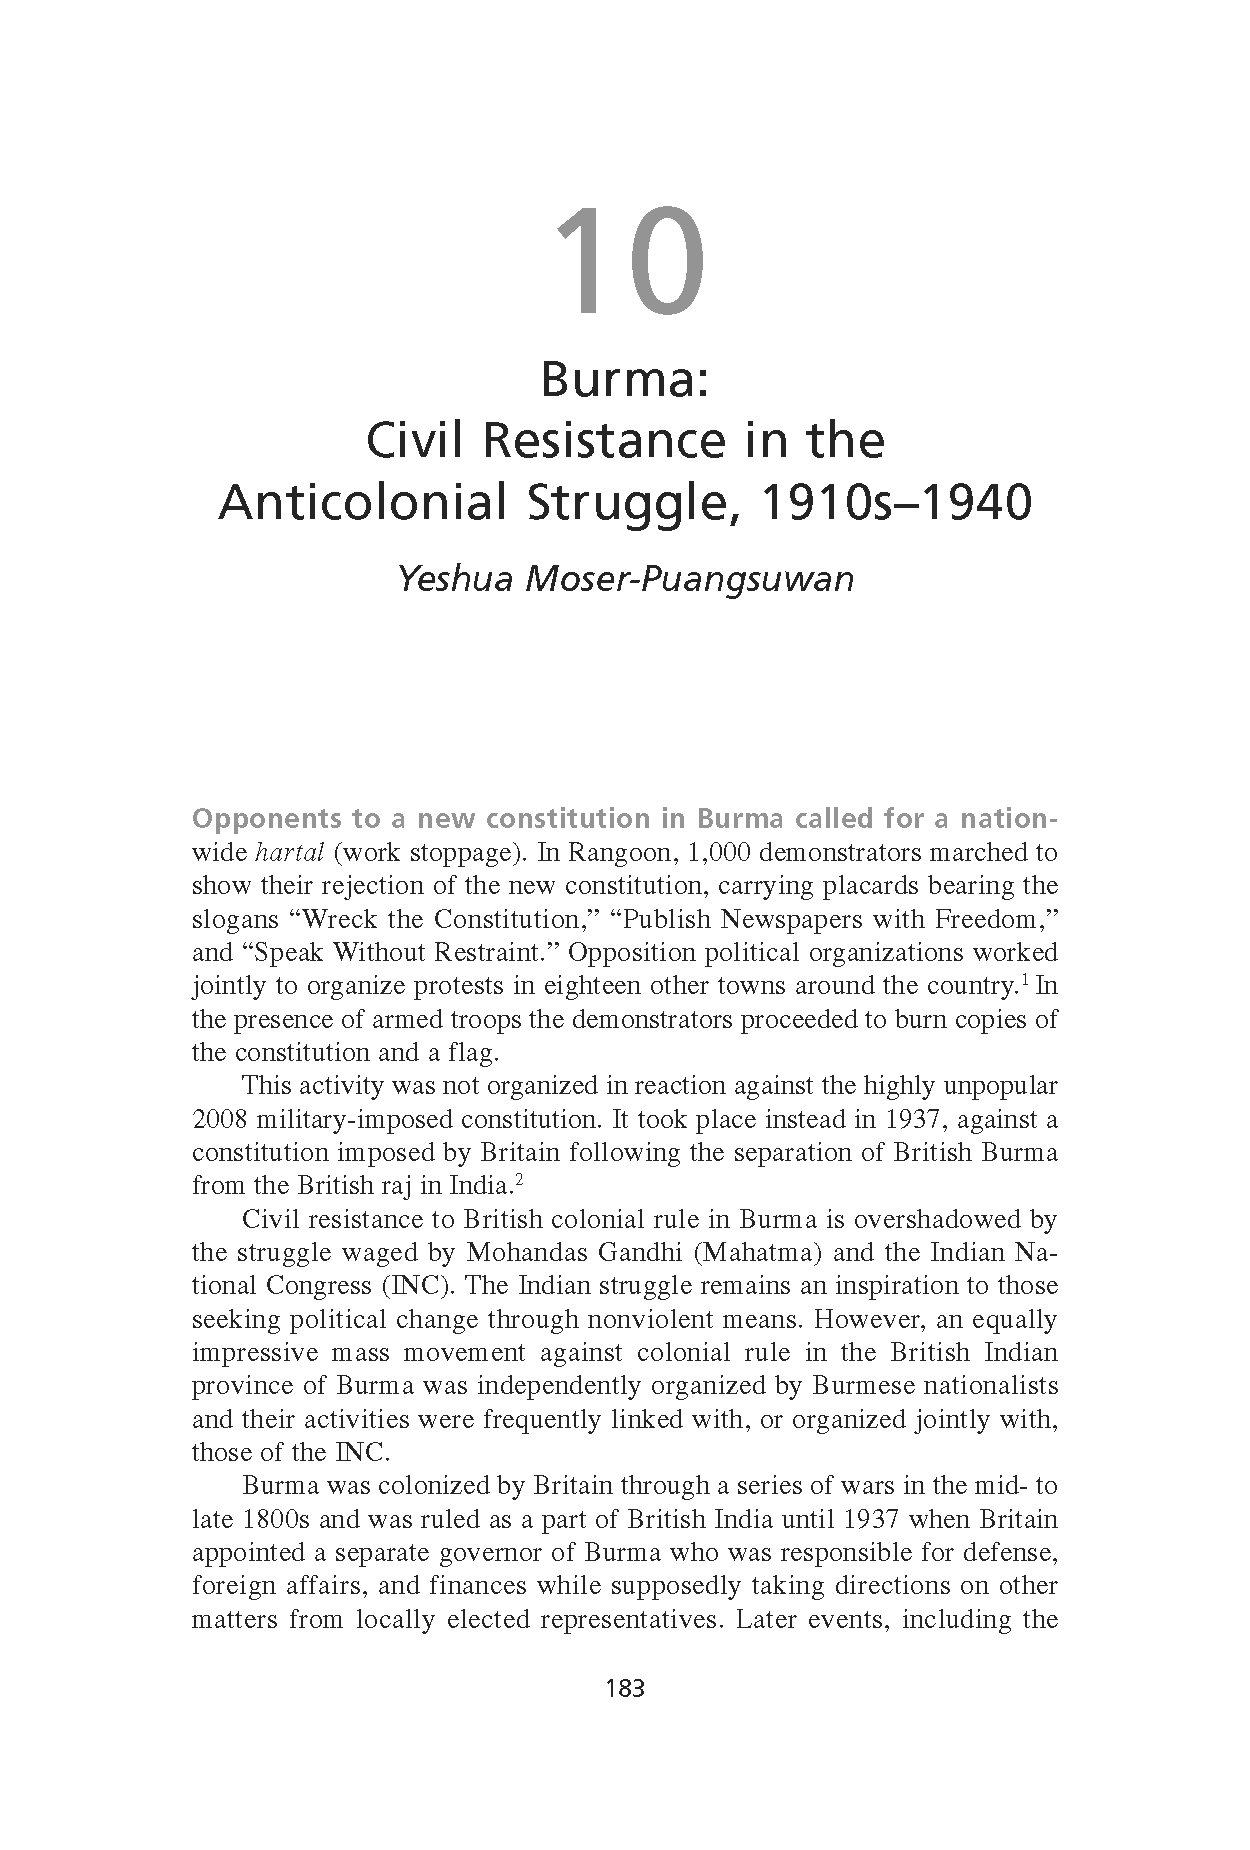 Burma: Civil Resistance in the Anticolonial Struggle, 1910s-1940 (Chapter 10 from 'Recovering Nonviolent History')